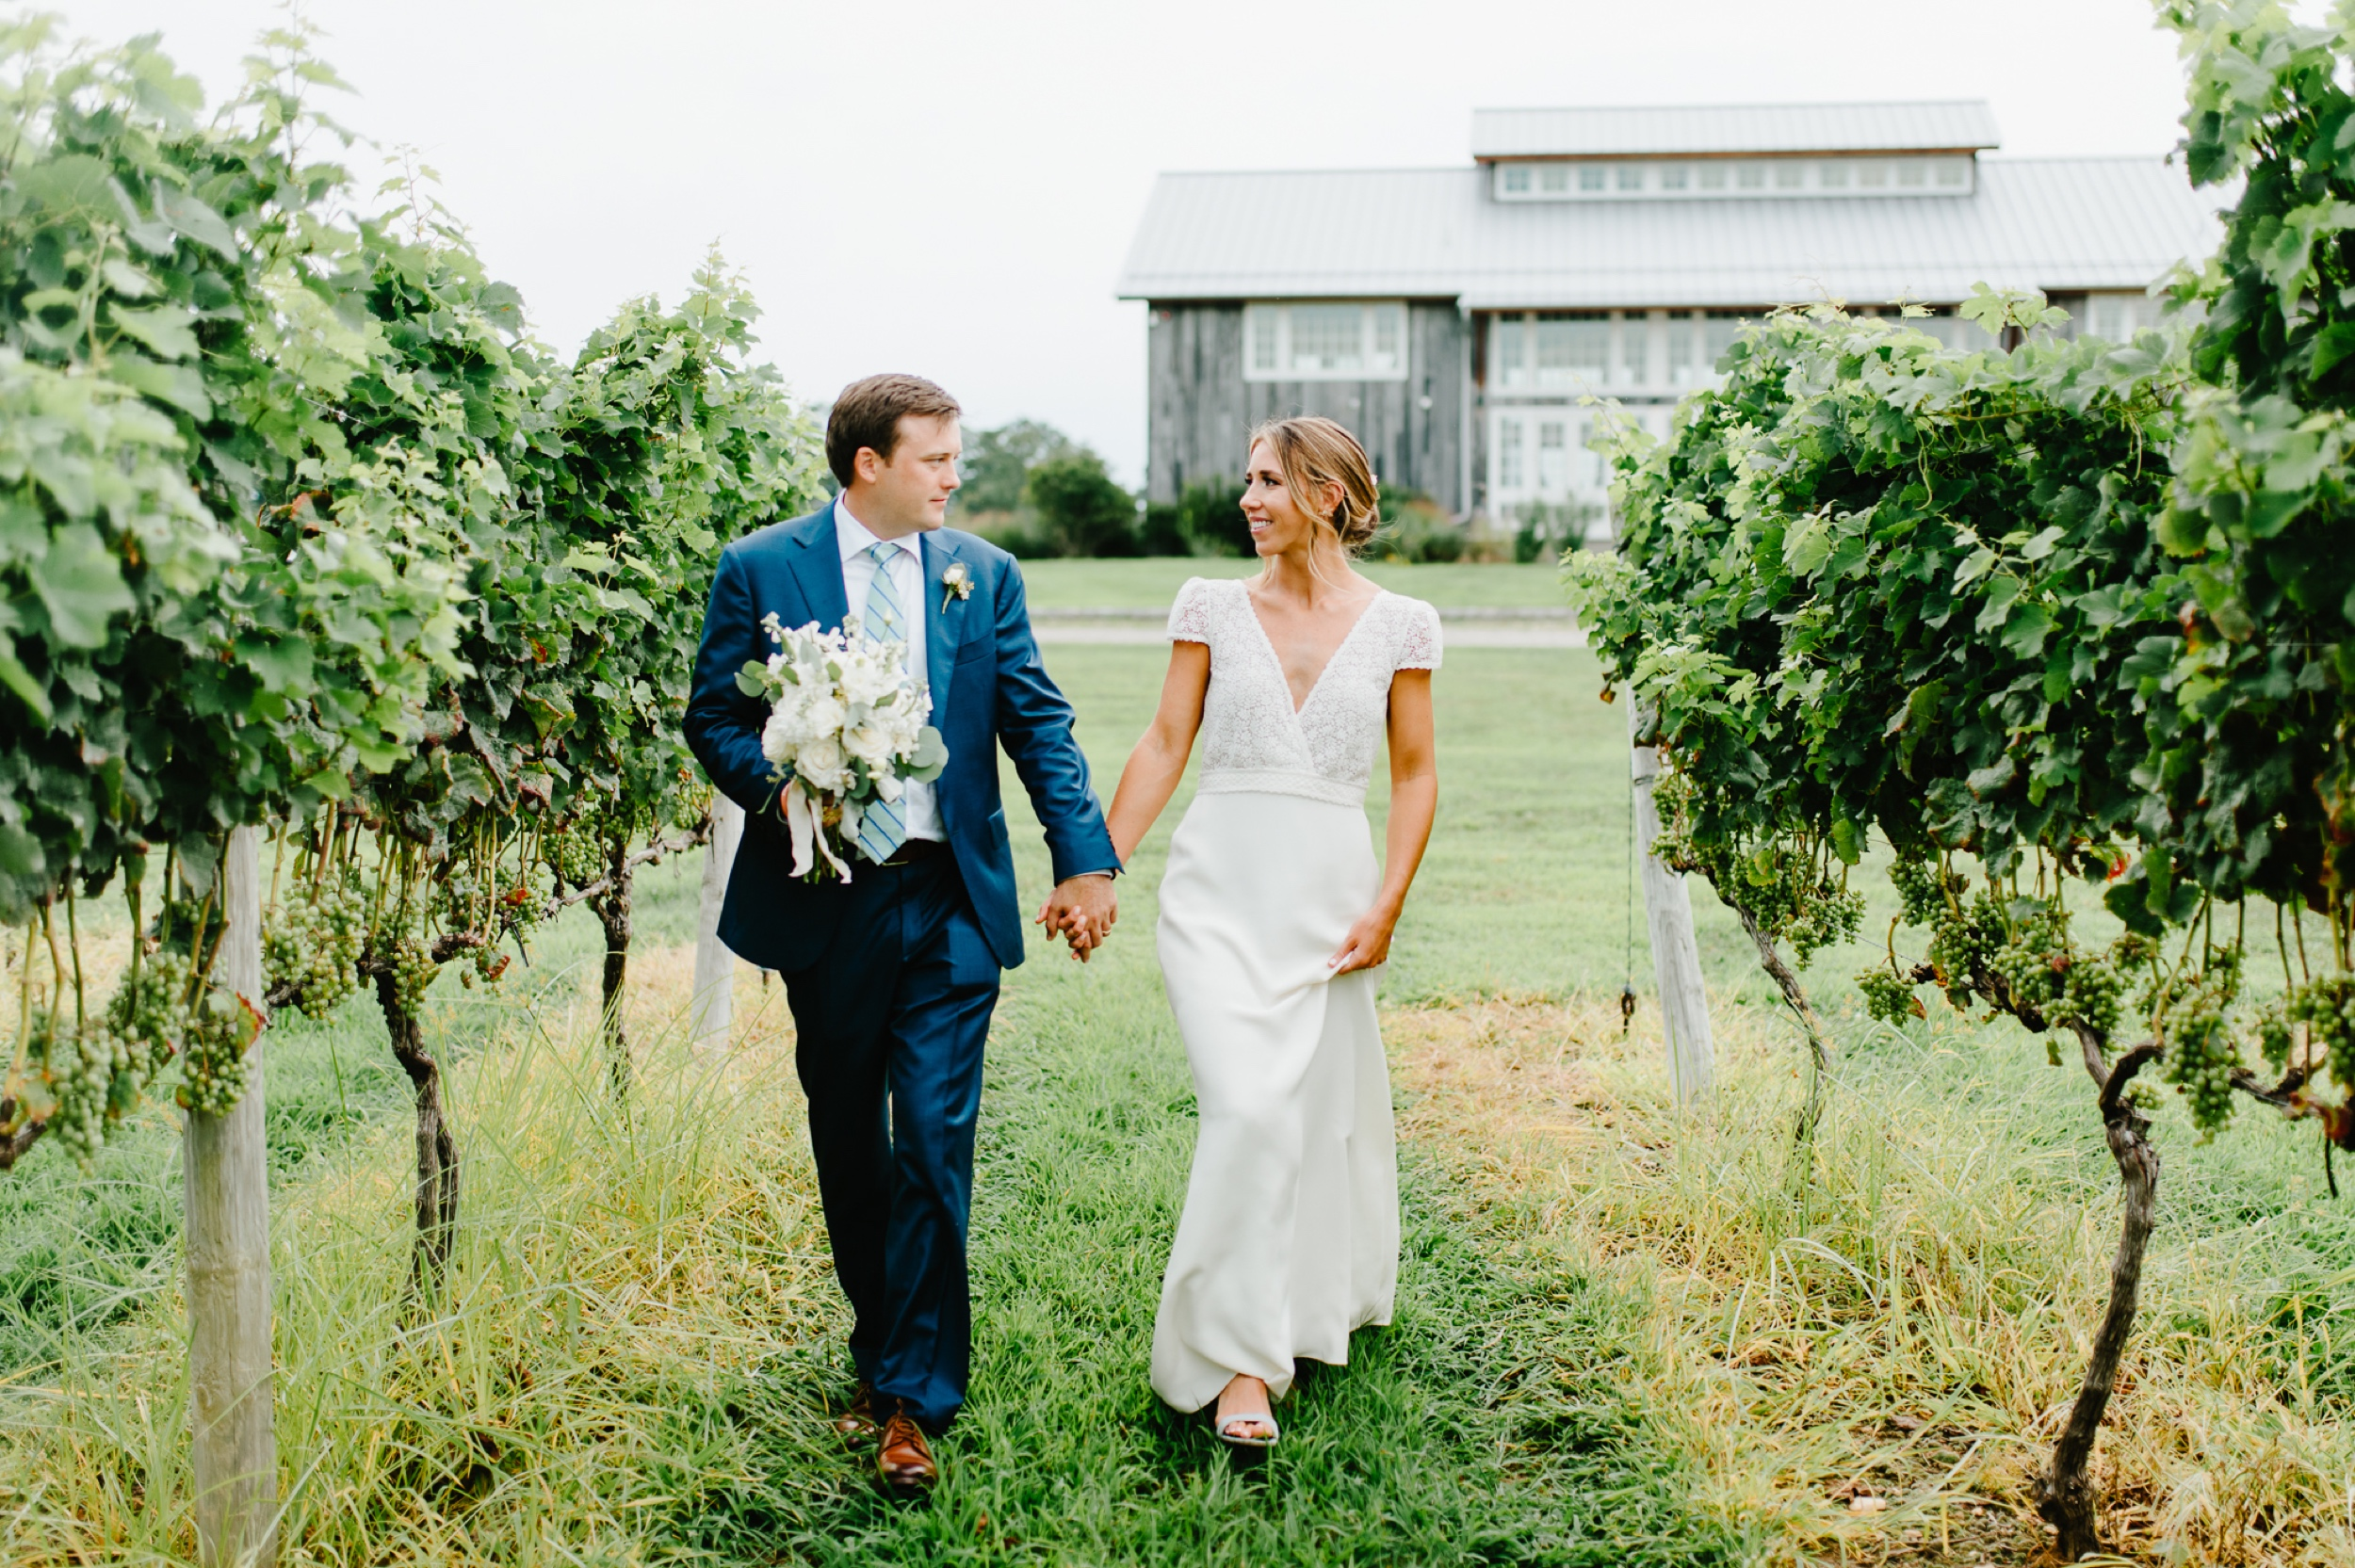 062_Kontokosta Winery Wedding Photos Greenport NY Wedding Photographer Longbrook Photography_0096.jpg